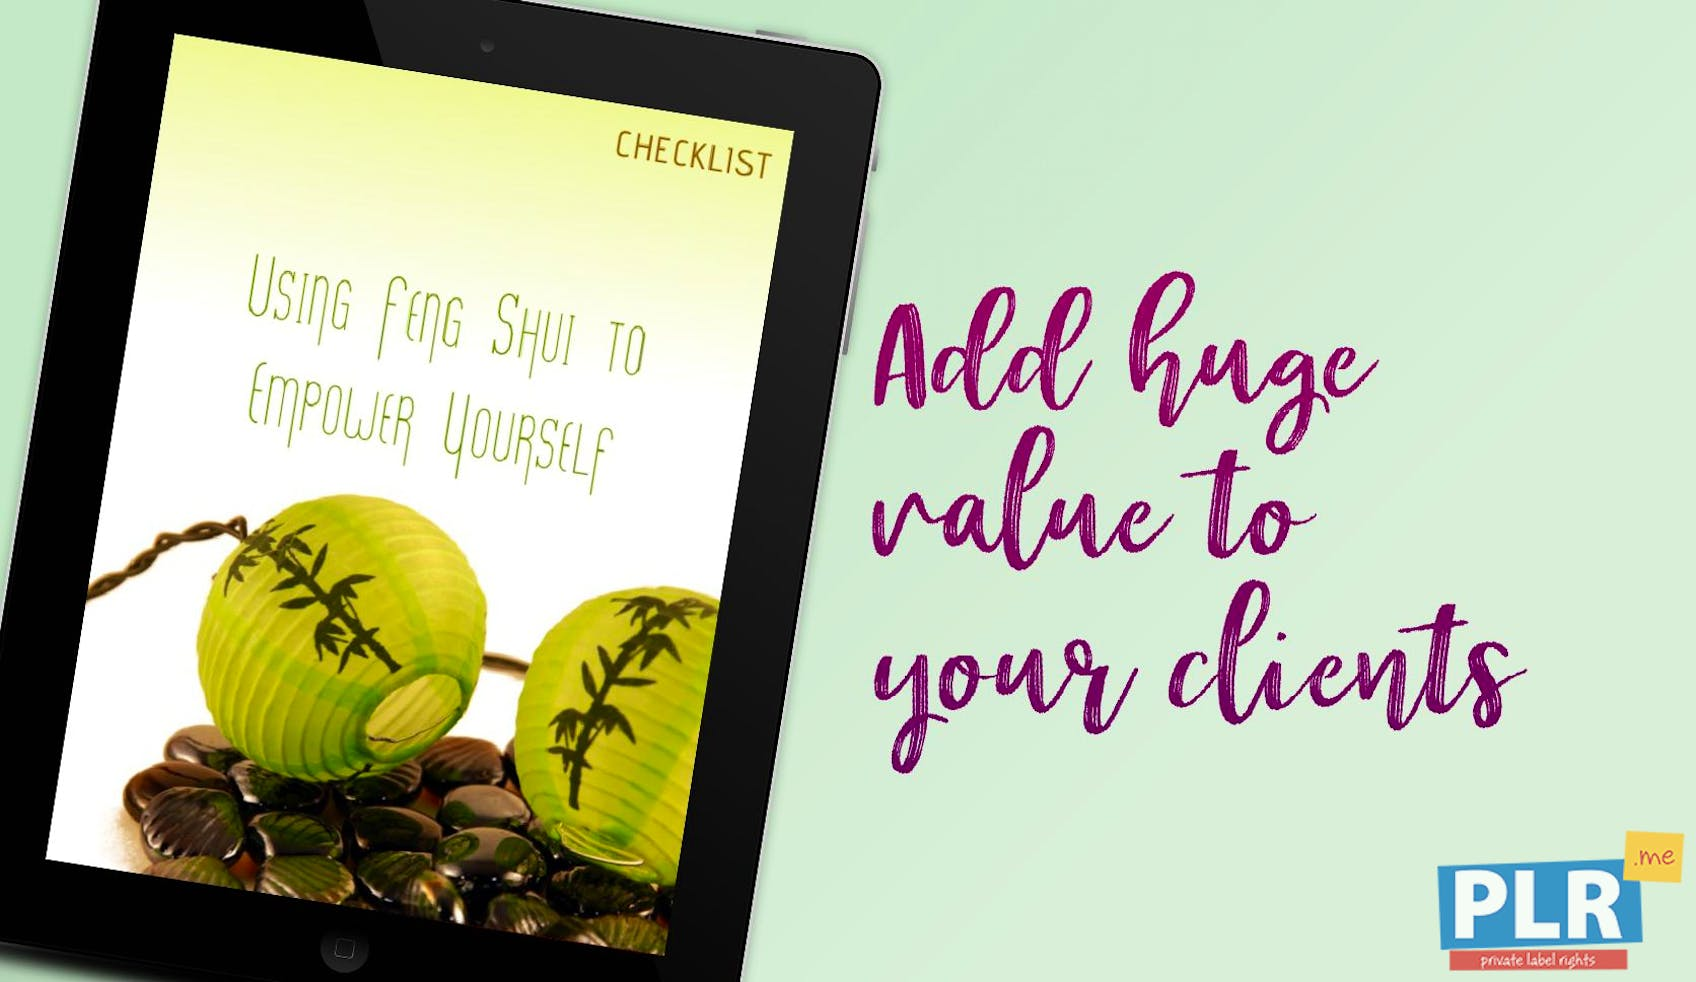 Using Feng Shui To Empower Yourself Checklist